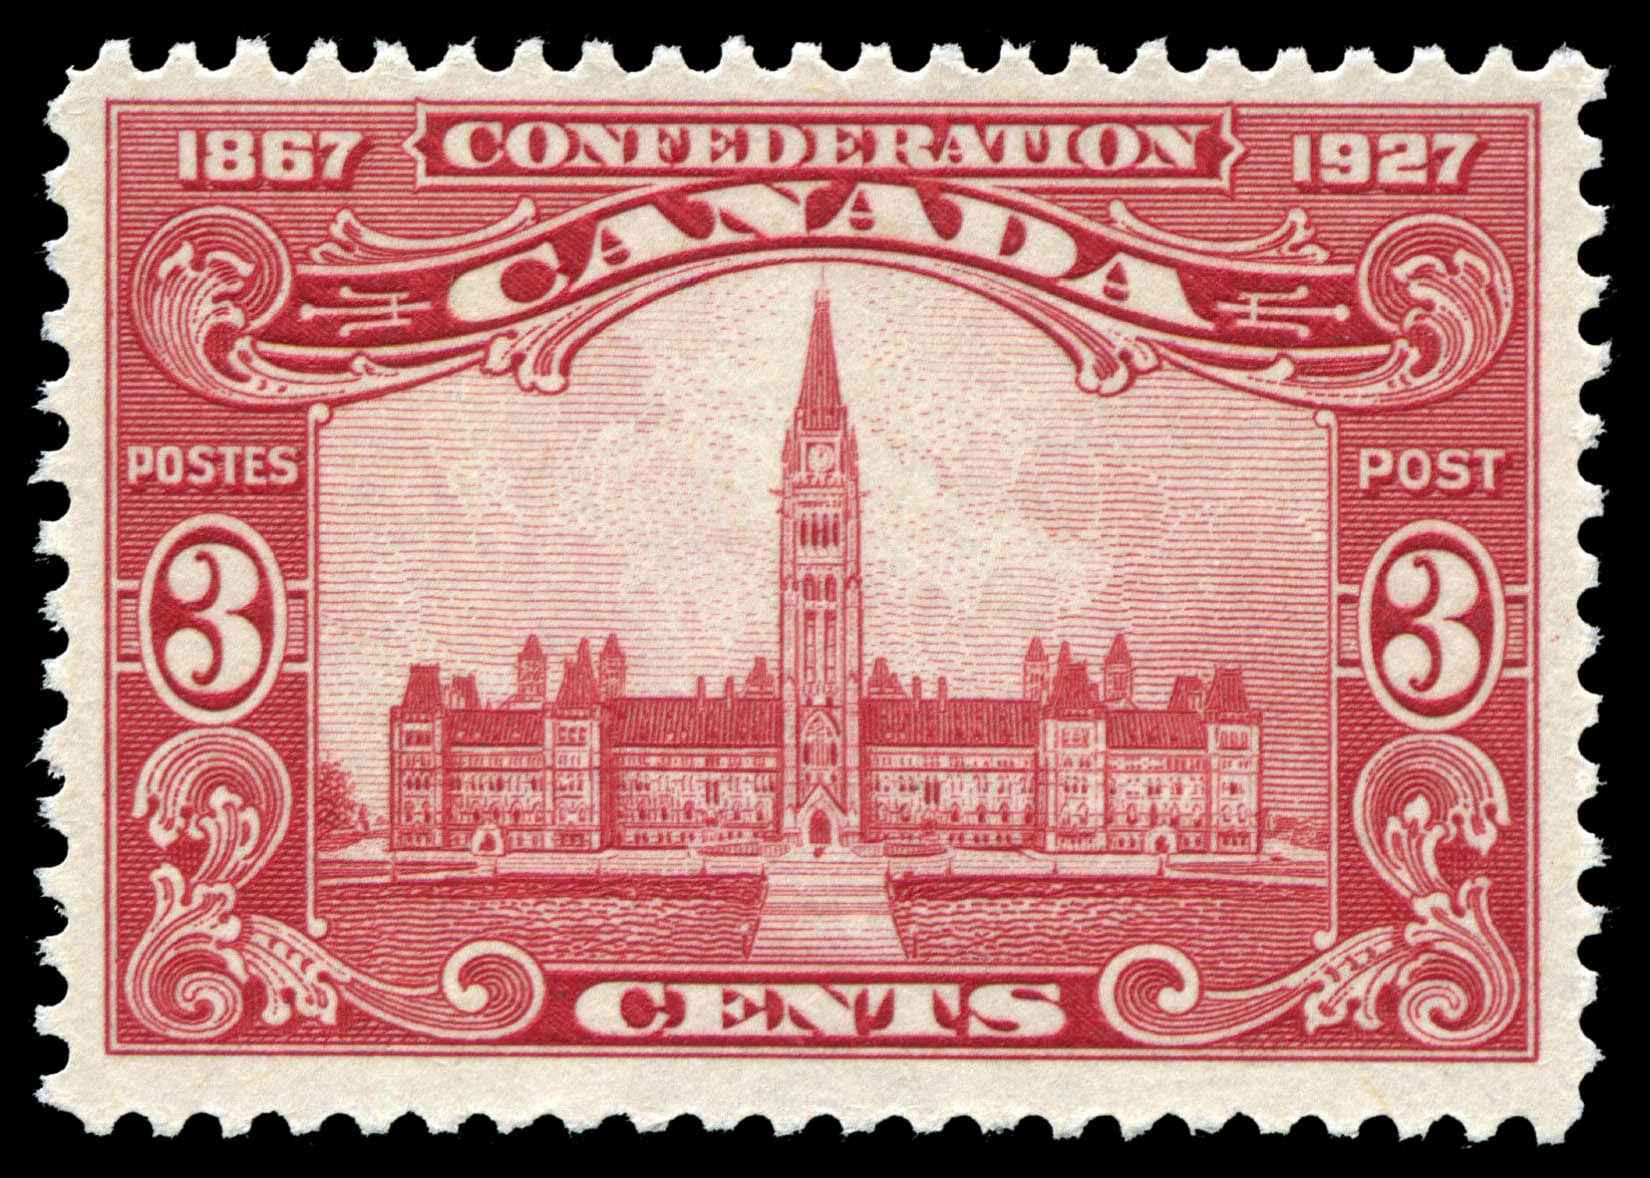 Centre Block of the Parliament Buildings Canada Postage Stamp